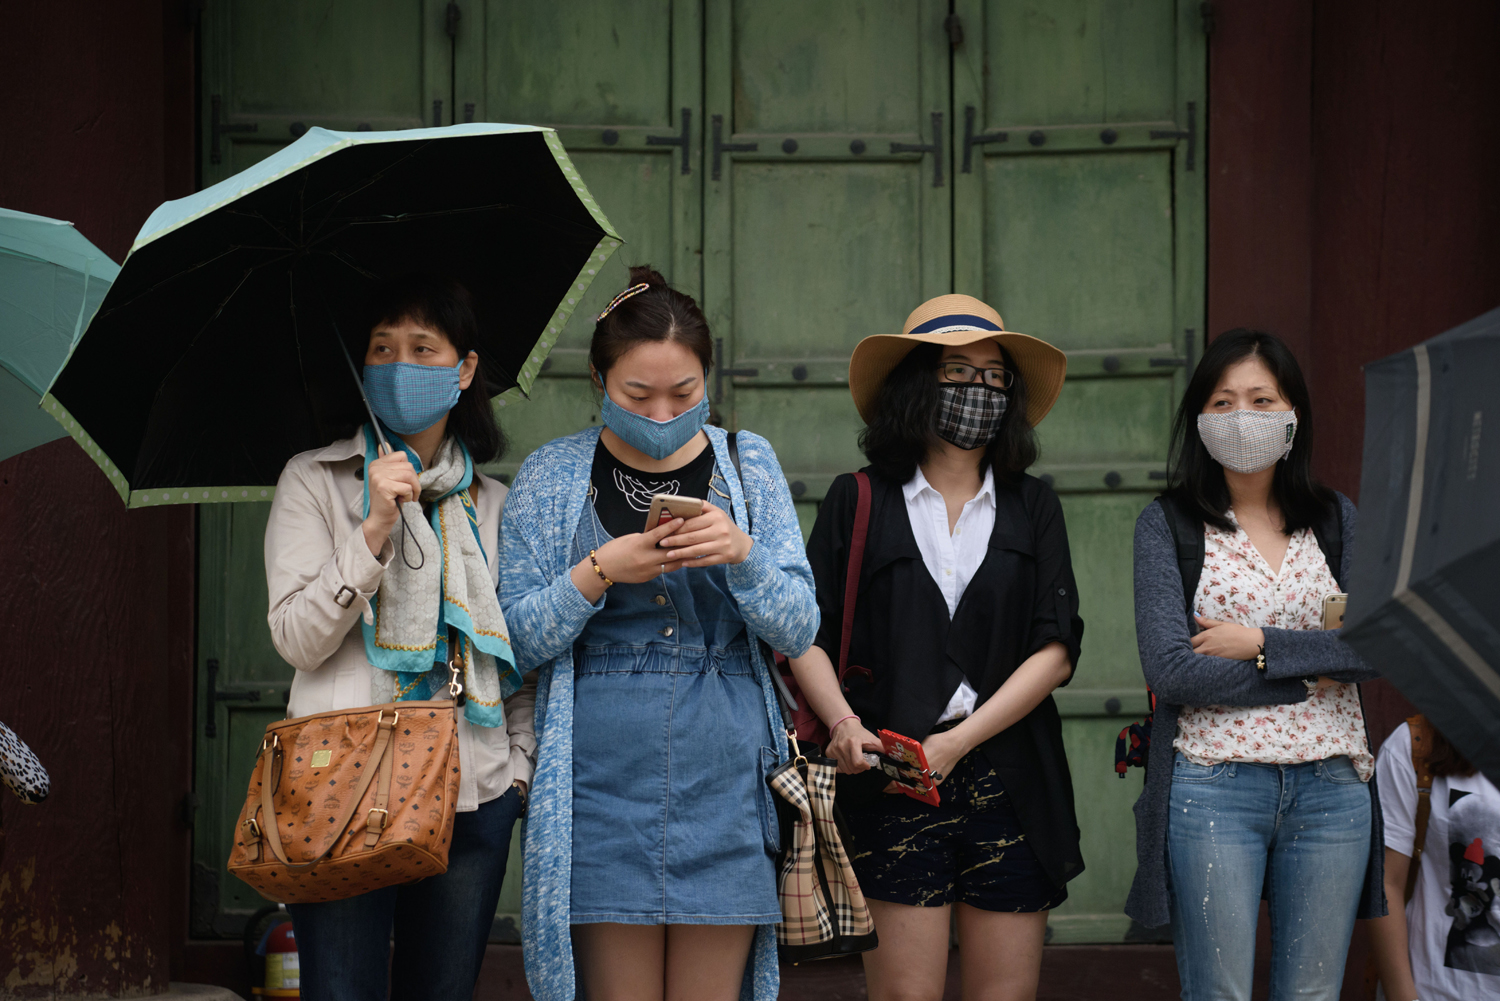 Tourists wearing face masks visit Gyeongbokgung palace in central Seoul on June 5, 2015